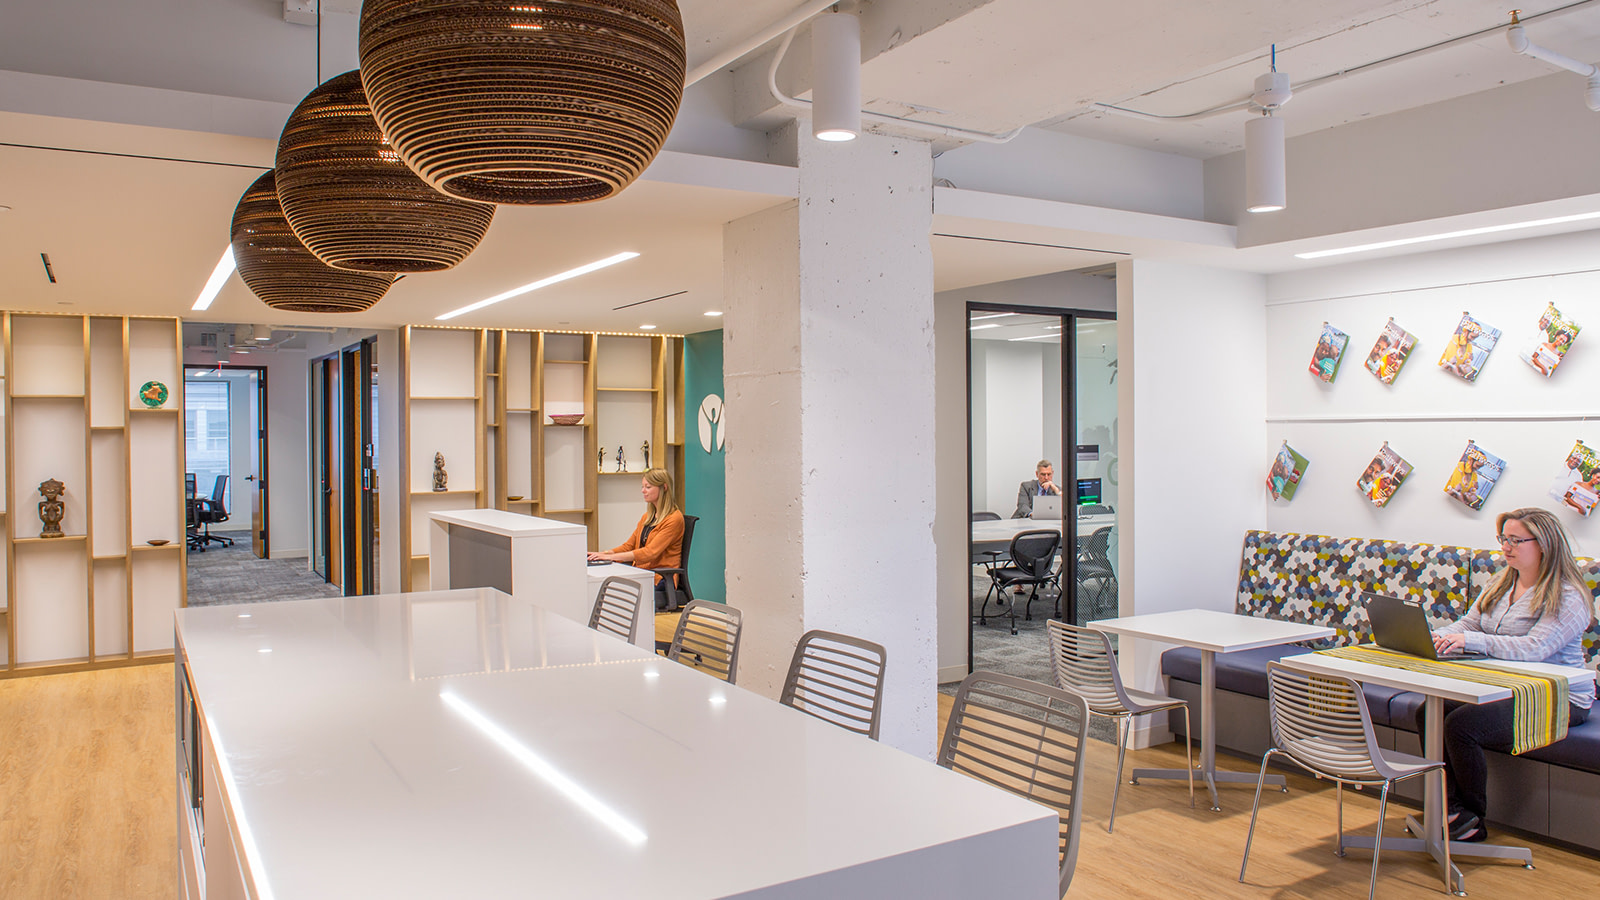 Meeting space at a global non-profit